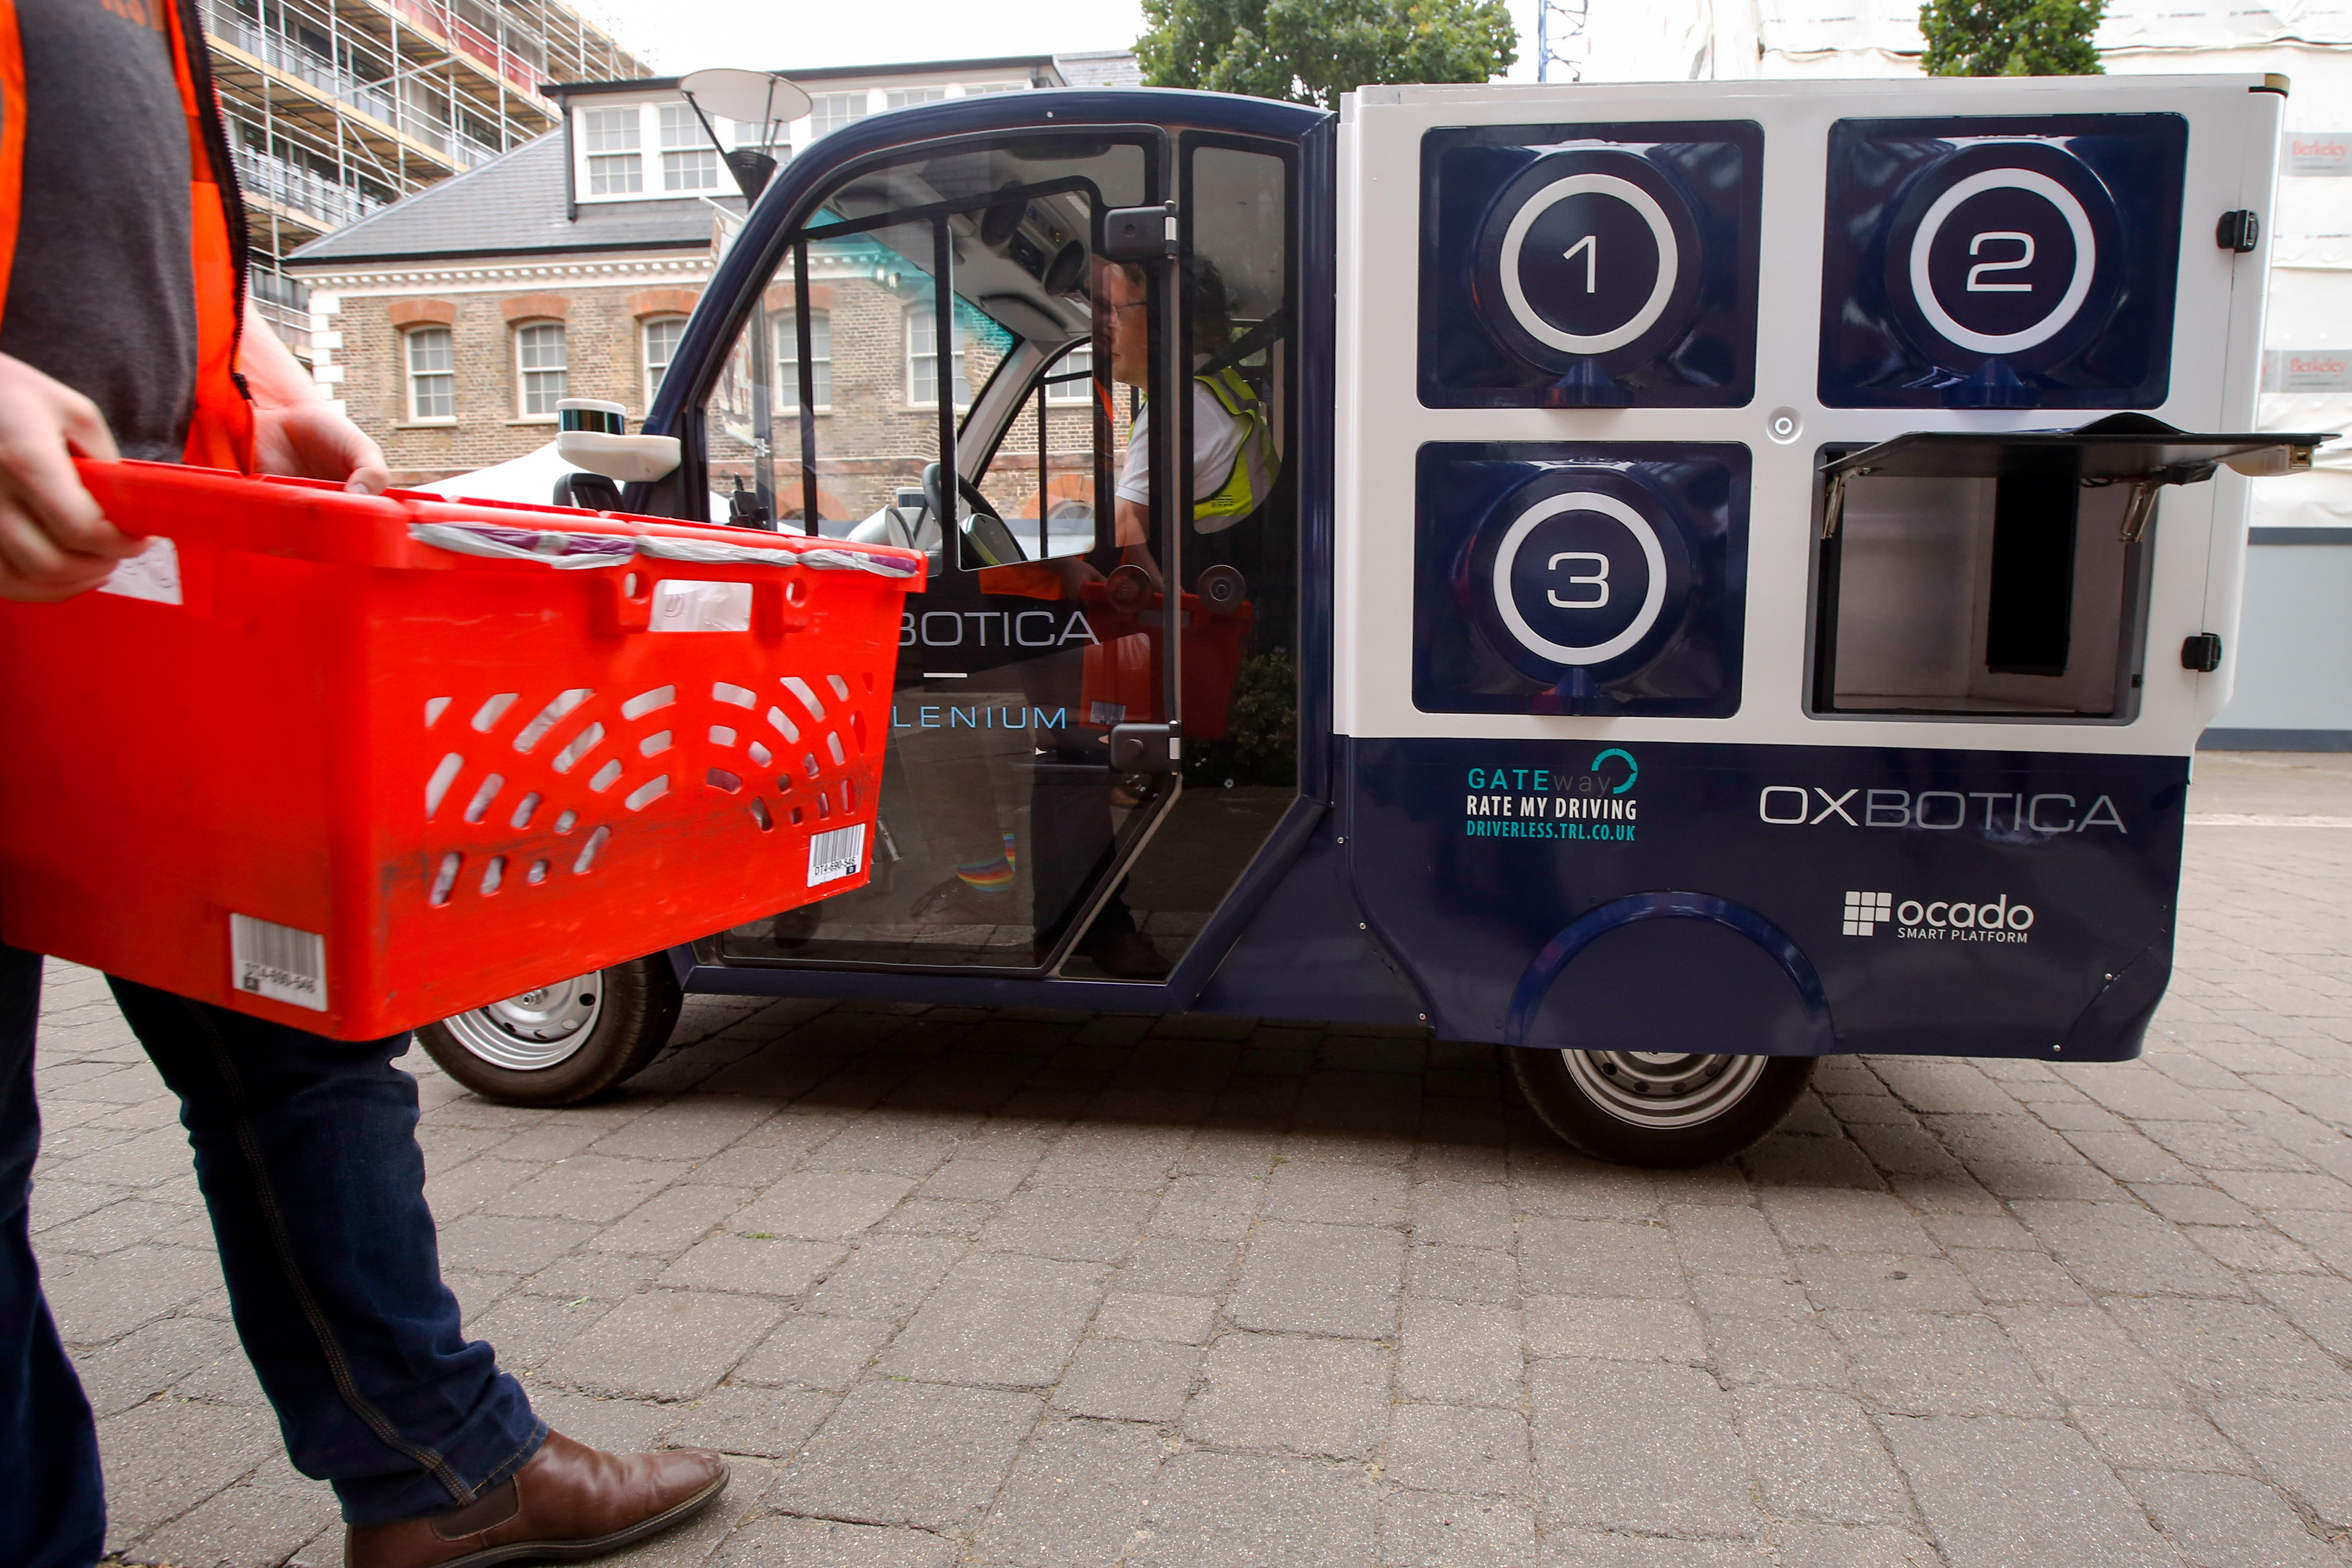 Ocado Group Plc And Oxbotica Demonstrate Technology Being Used In A Driverless Grocery Delivery Trial